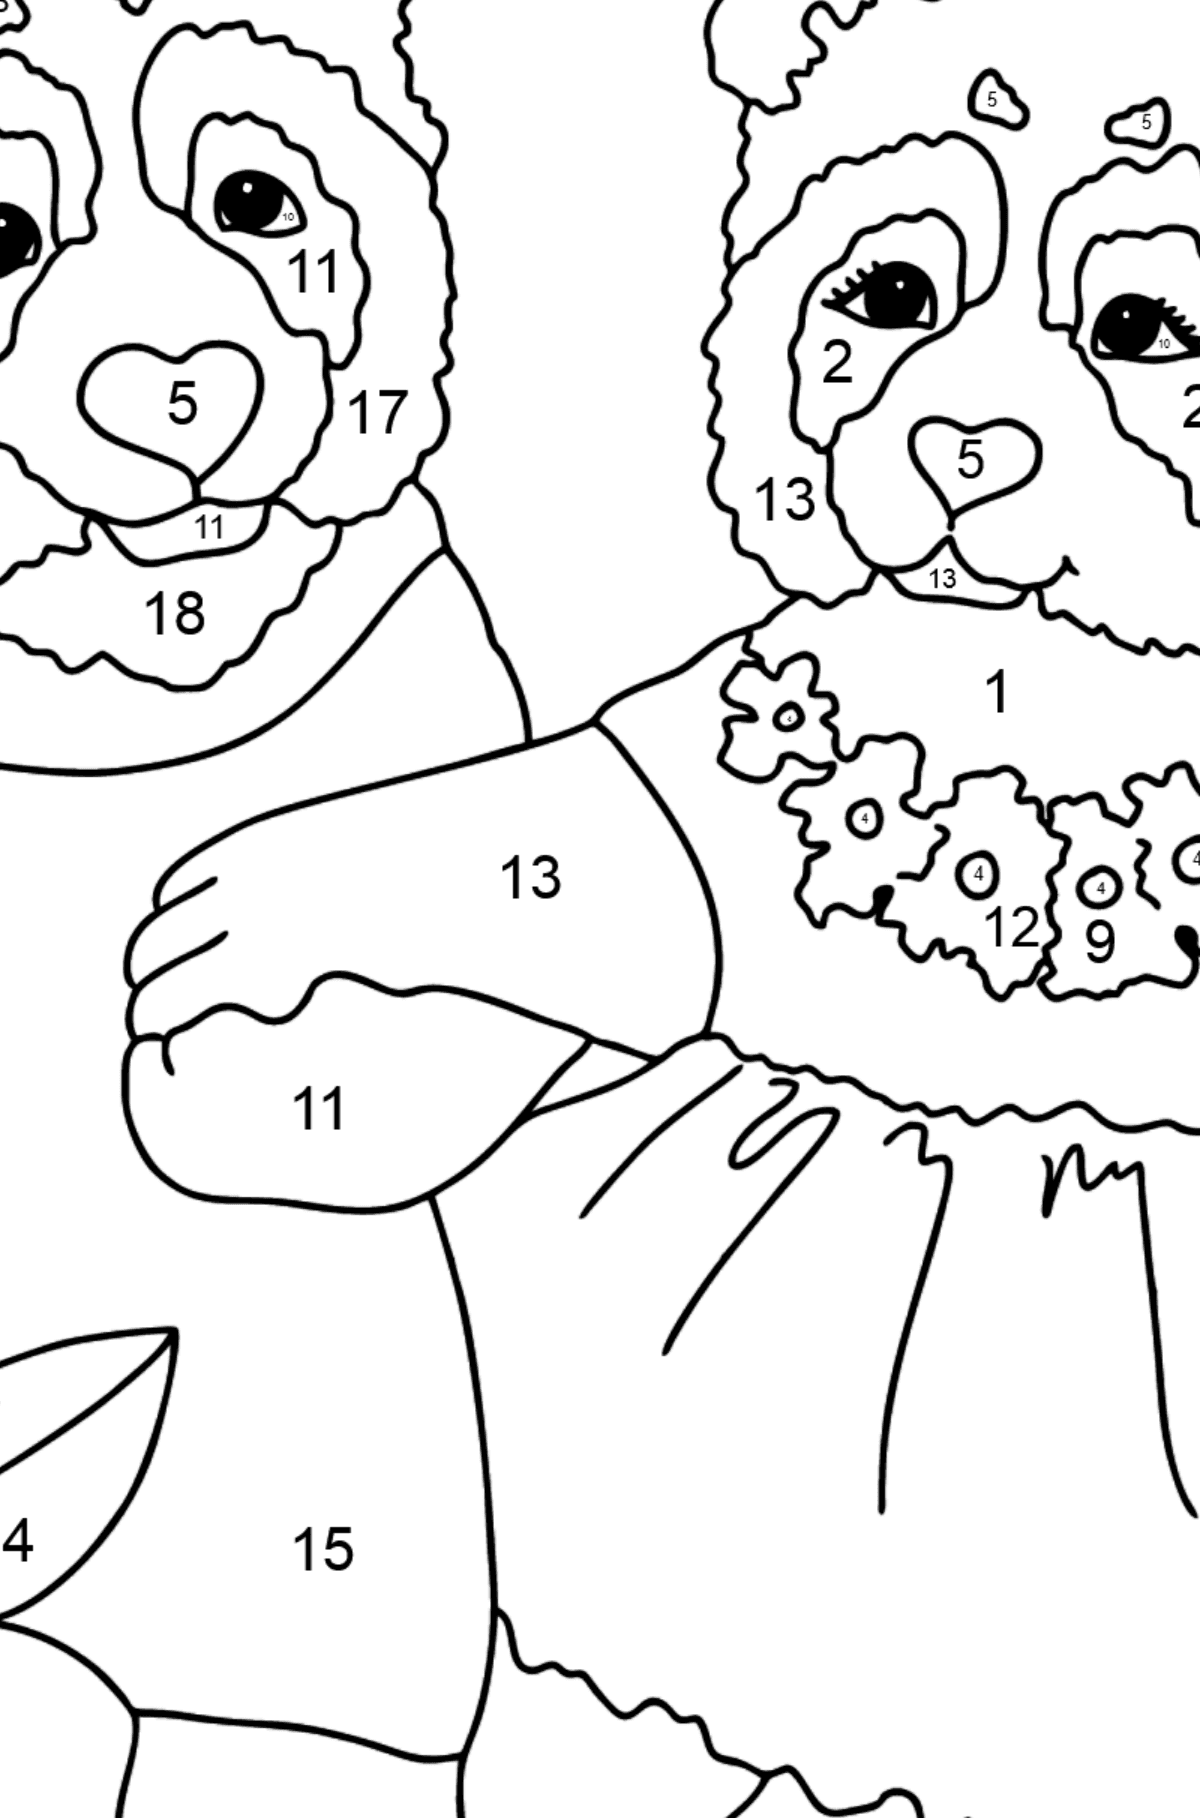 Coloring Page - Pandas are Having a Rest - Coloring by Numbers for Kids